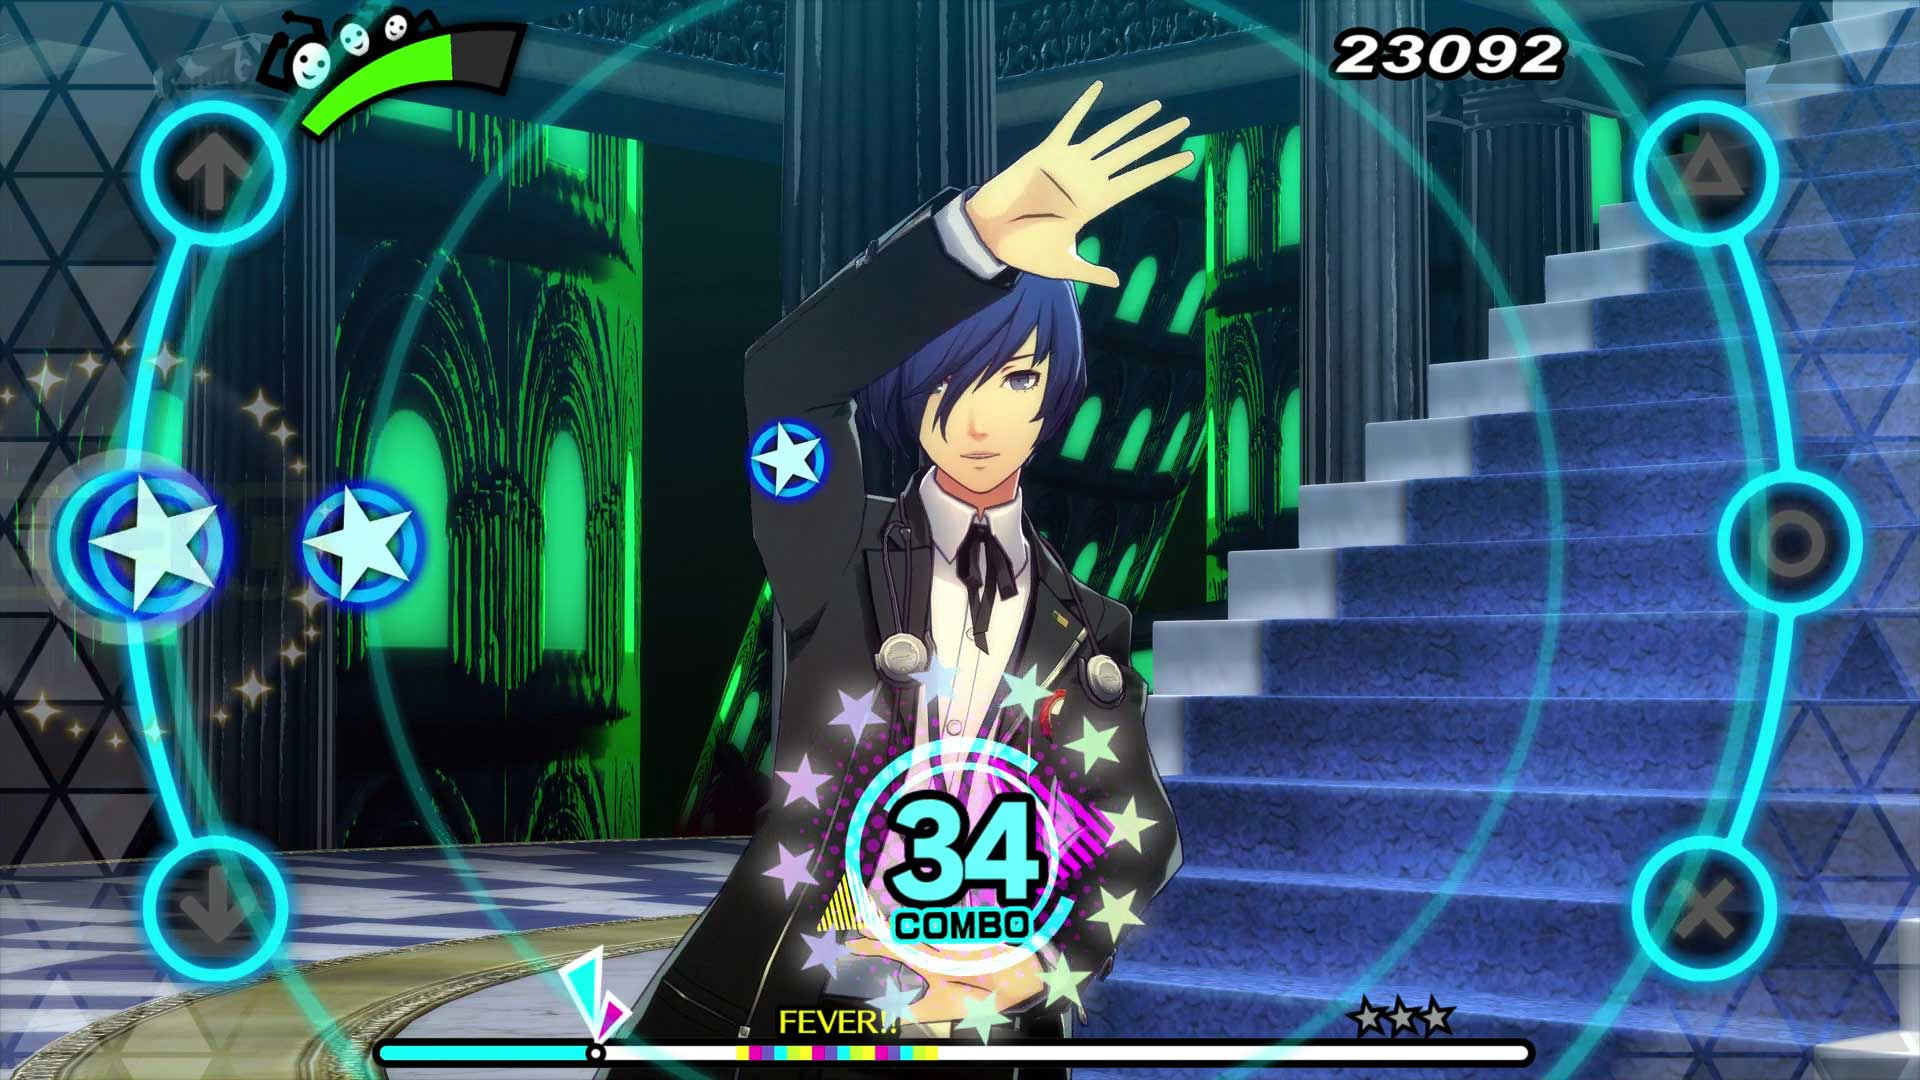 Review_Persona3Dancing_Persona5Dancing06